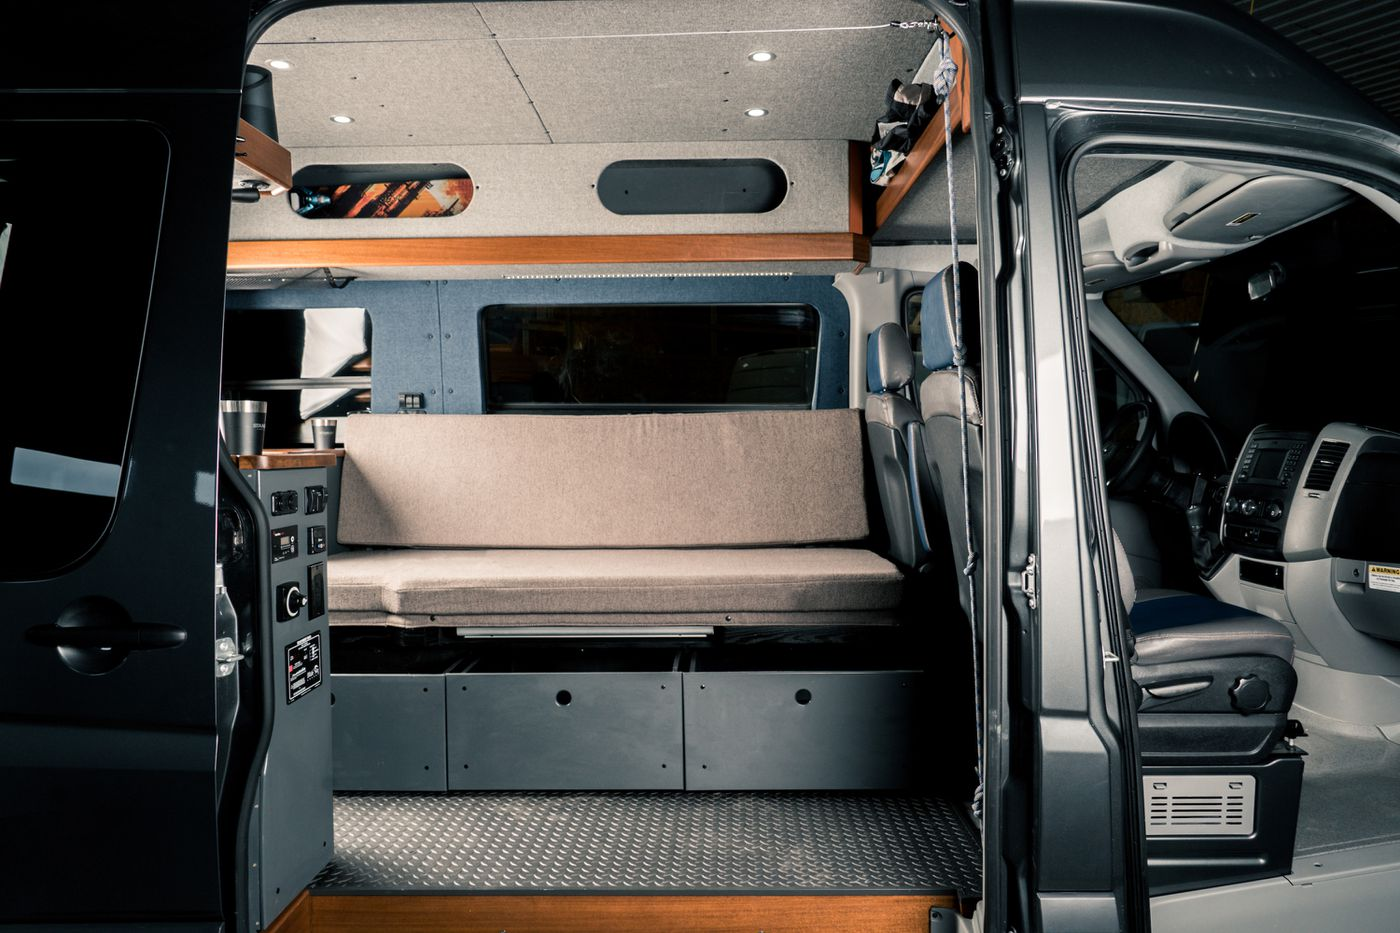 7 van conversion companies that can build your dream camper - Curbed